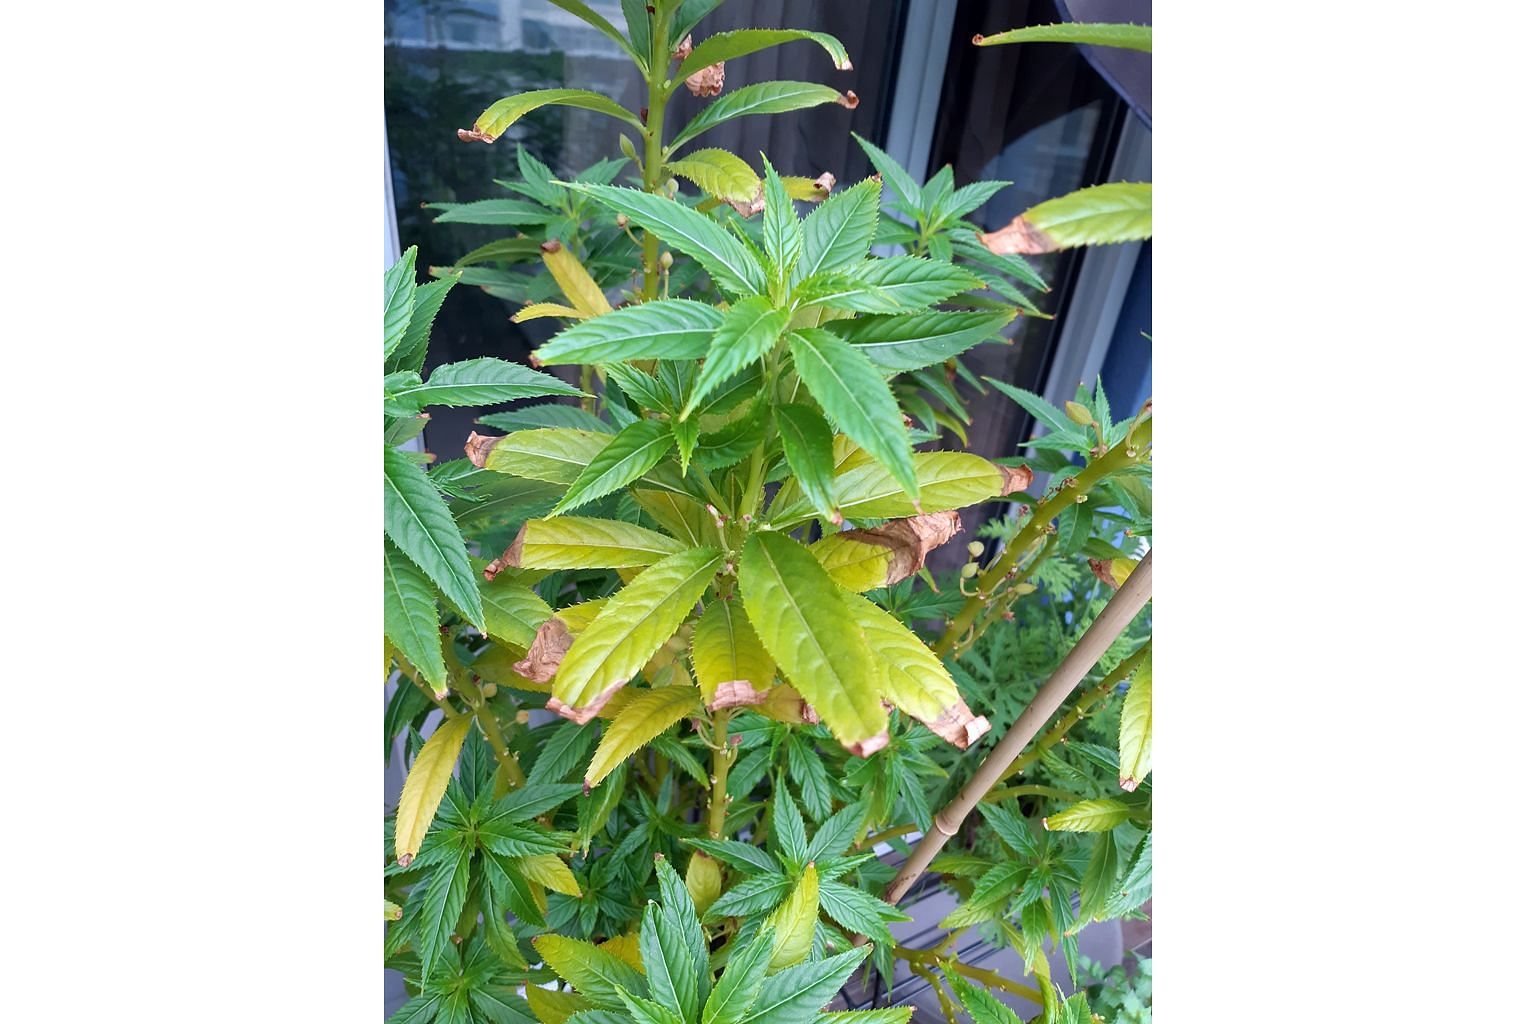 Stressed balsam plant may be lacking nutrients and water.